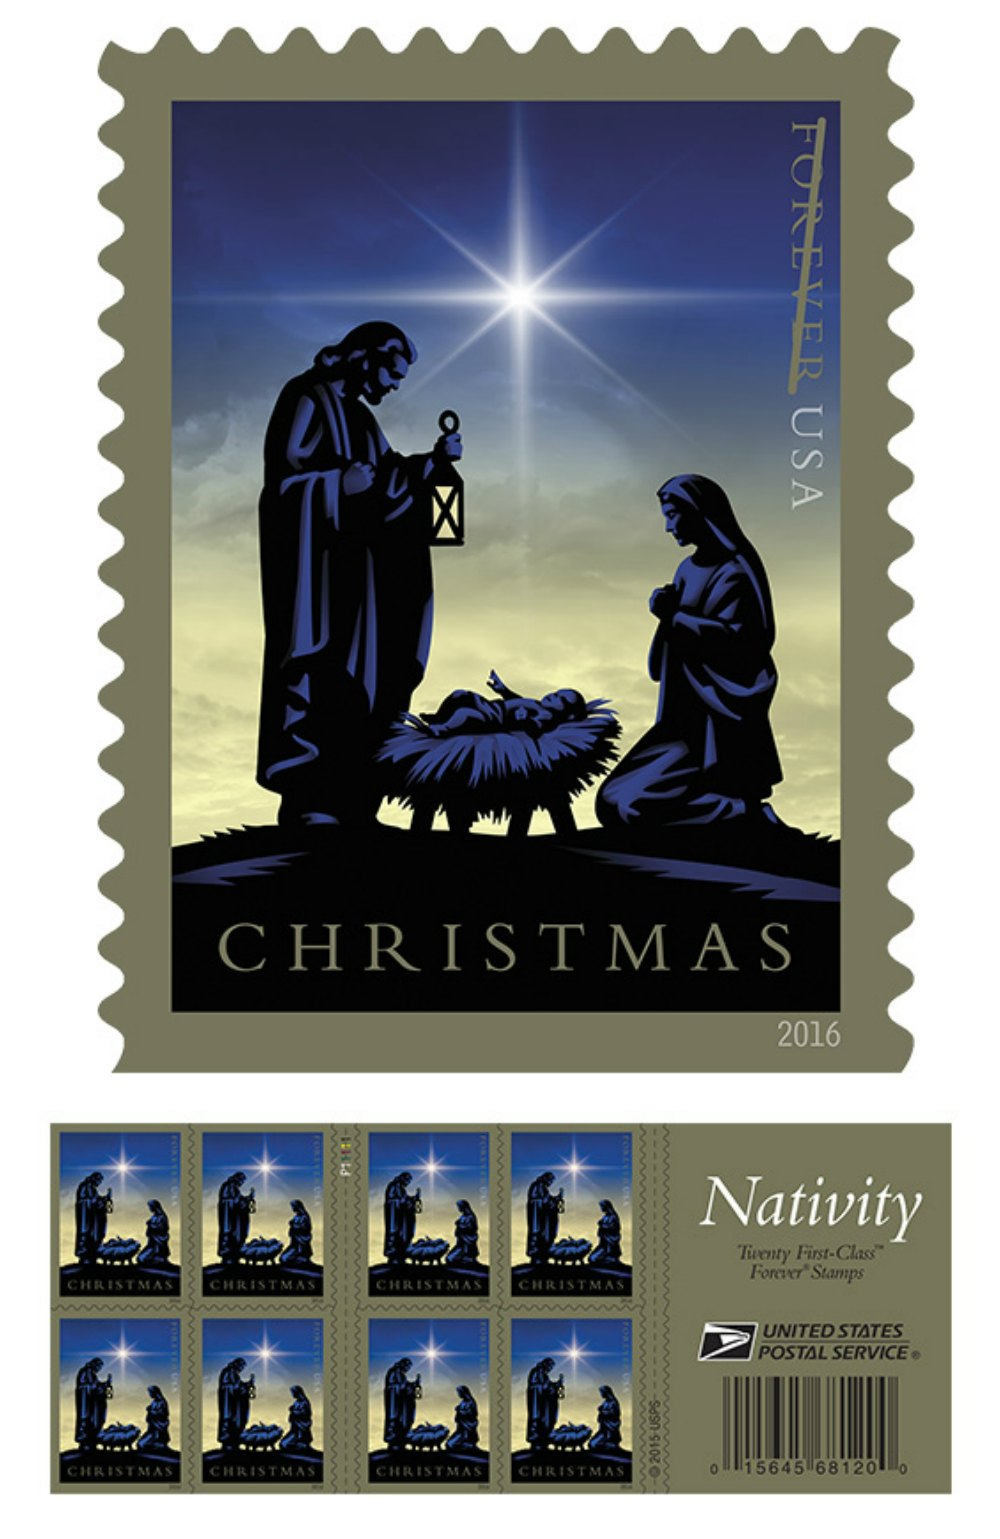 2016 christmas stamp from the usps features nativity scene